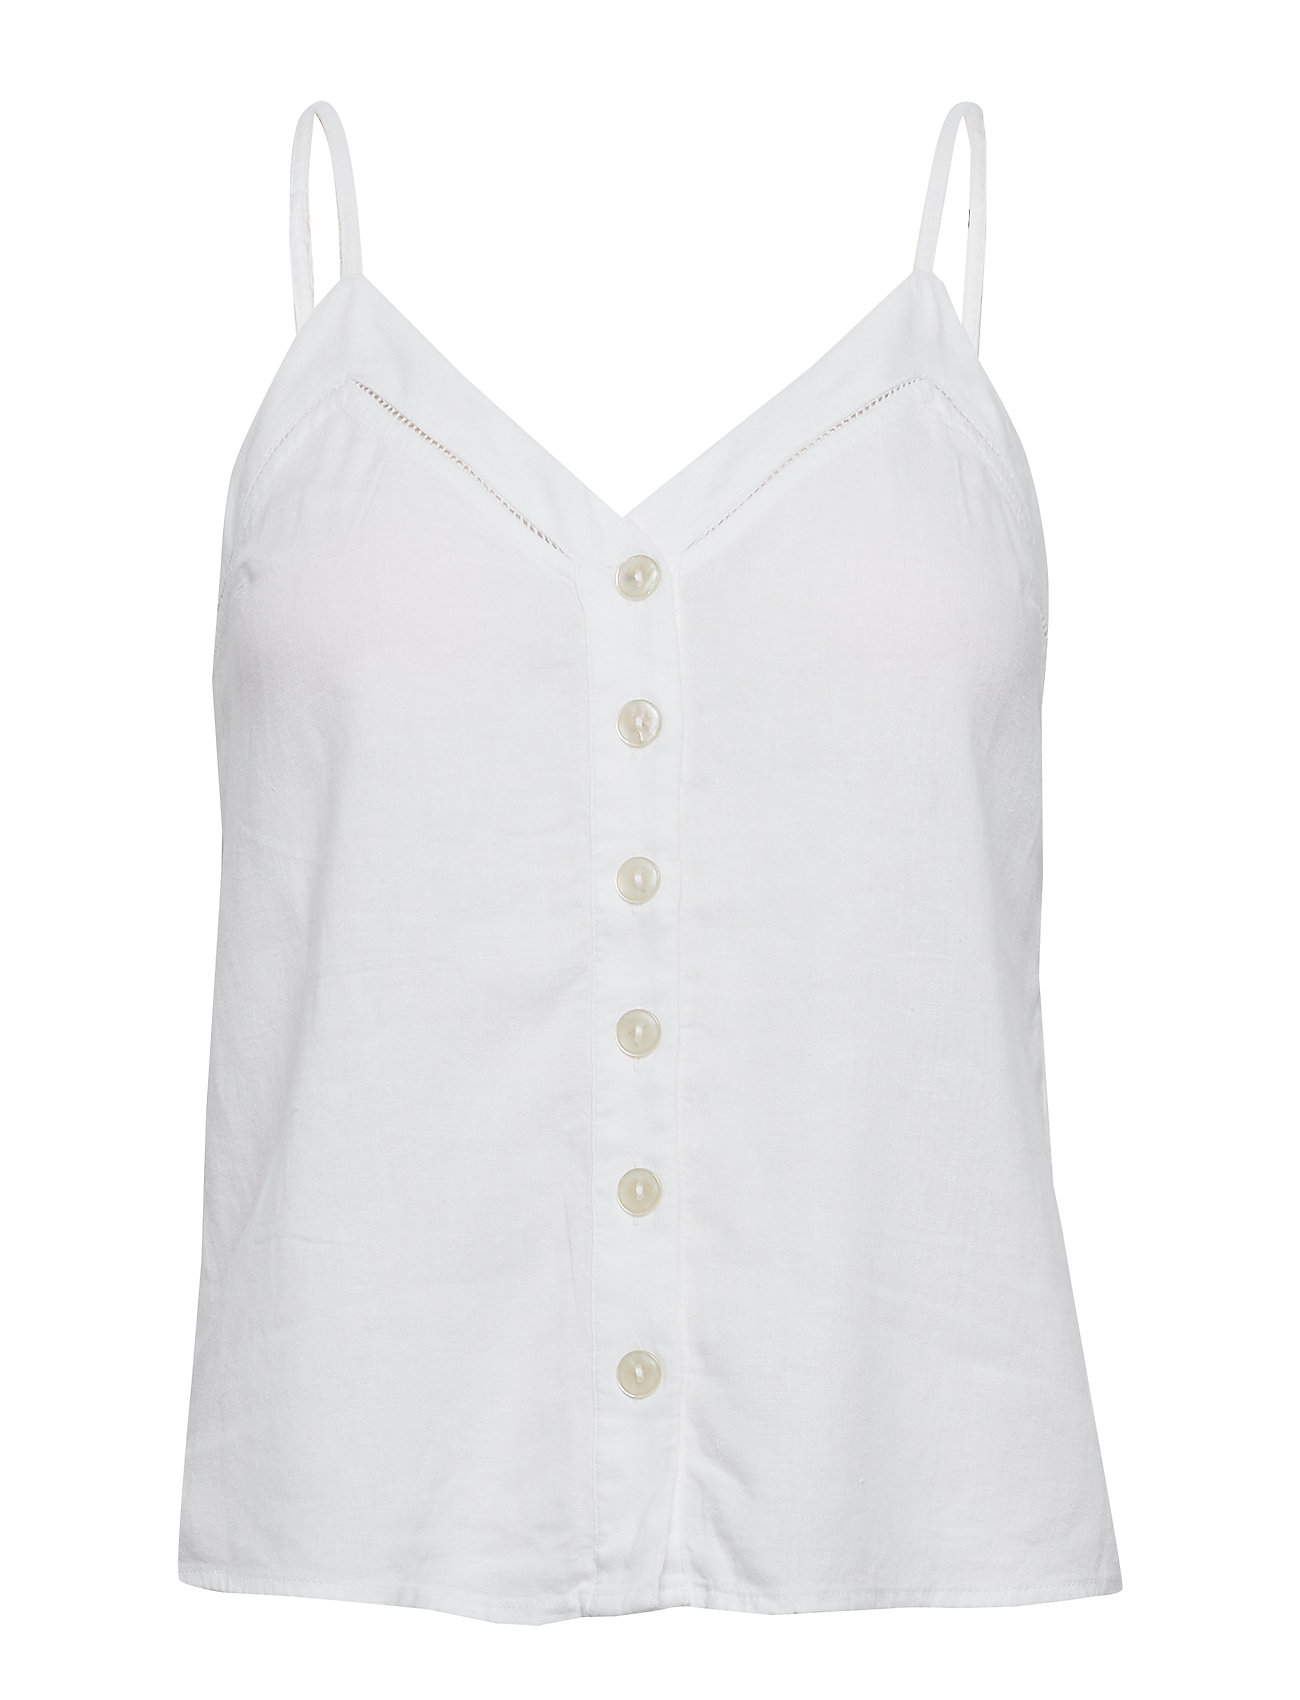 Abercrombie & Fitch Button Linen Cami - WHITE